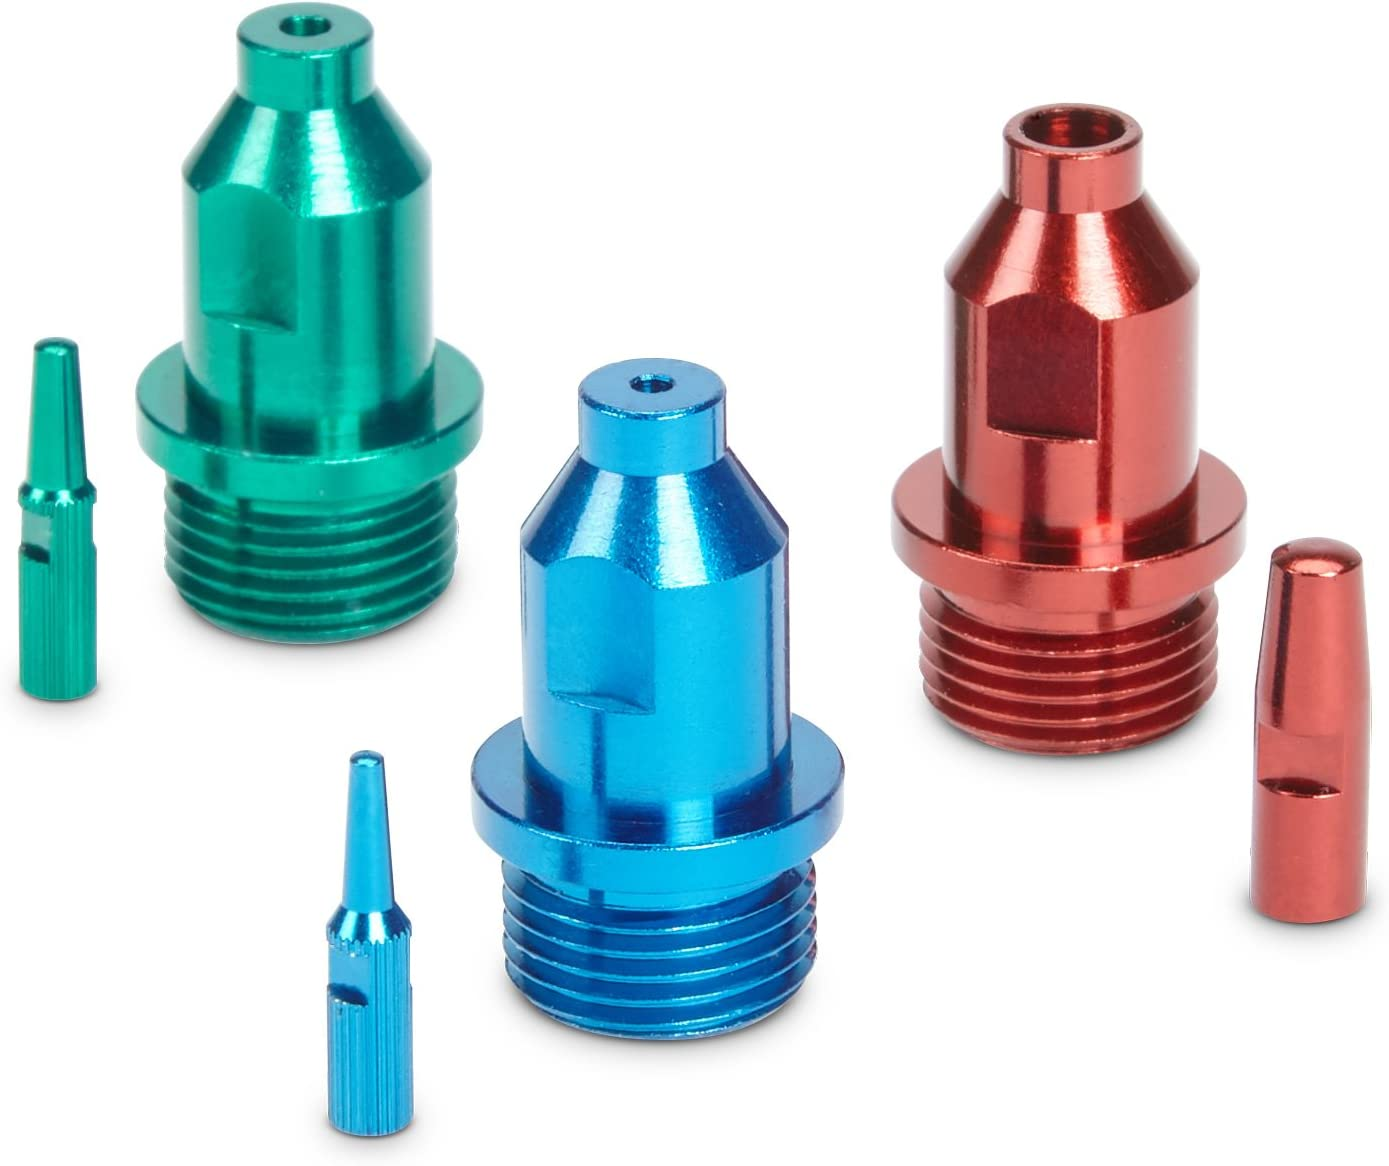 HomeRight C900111 Spray Tip Multi Pack for Super Finish Max (Red, Green & Blue), Green, Blue, 3 Piece